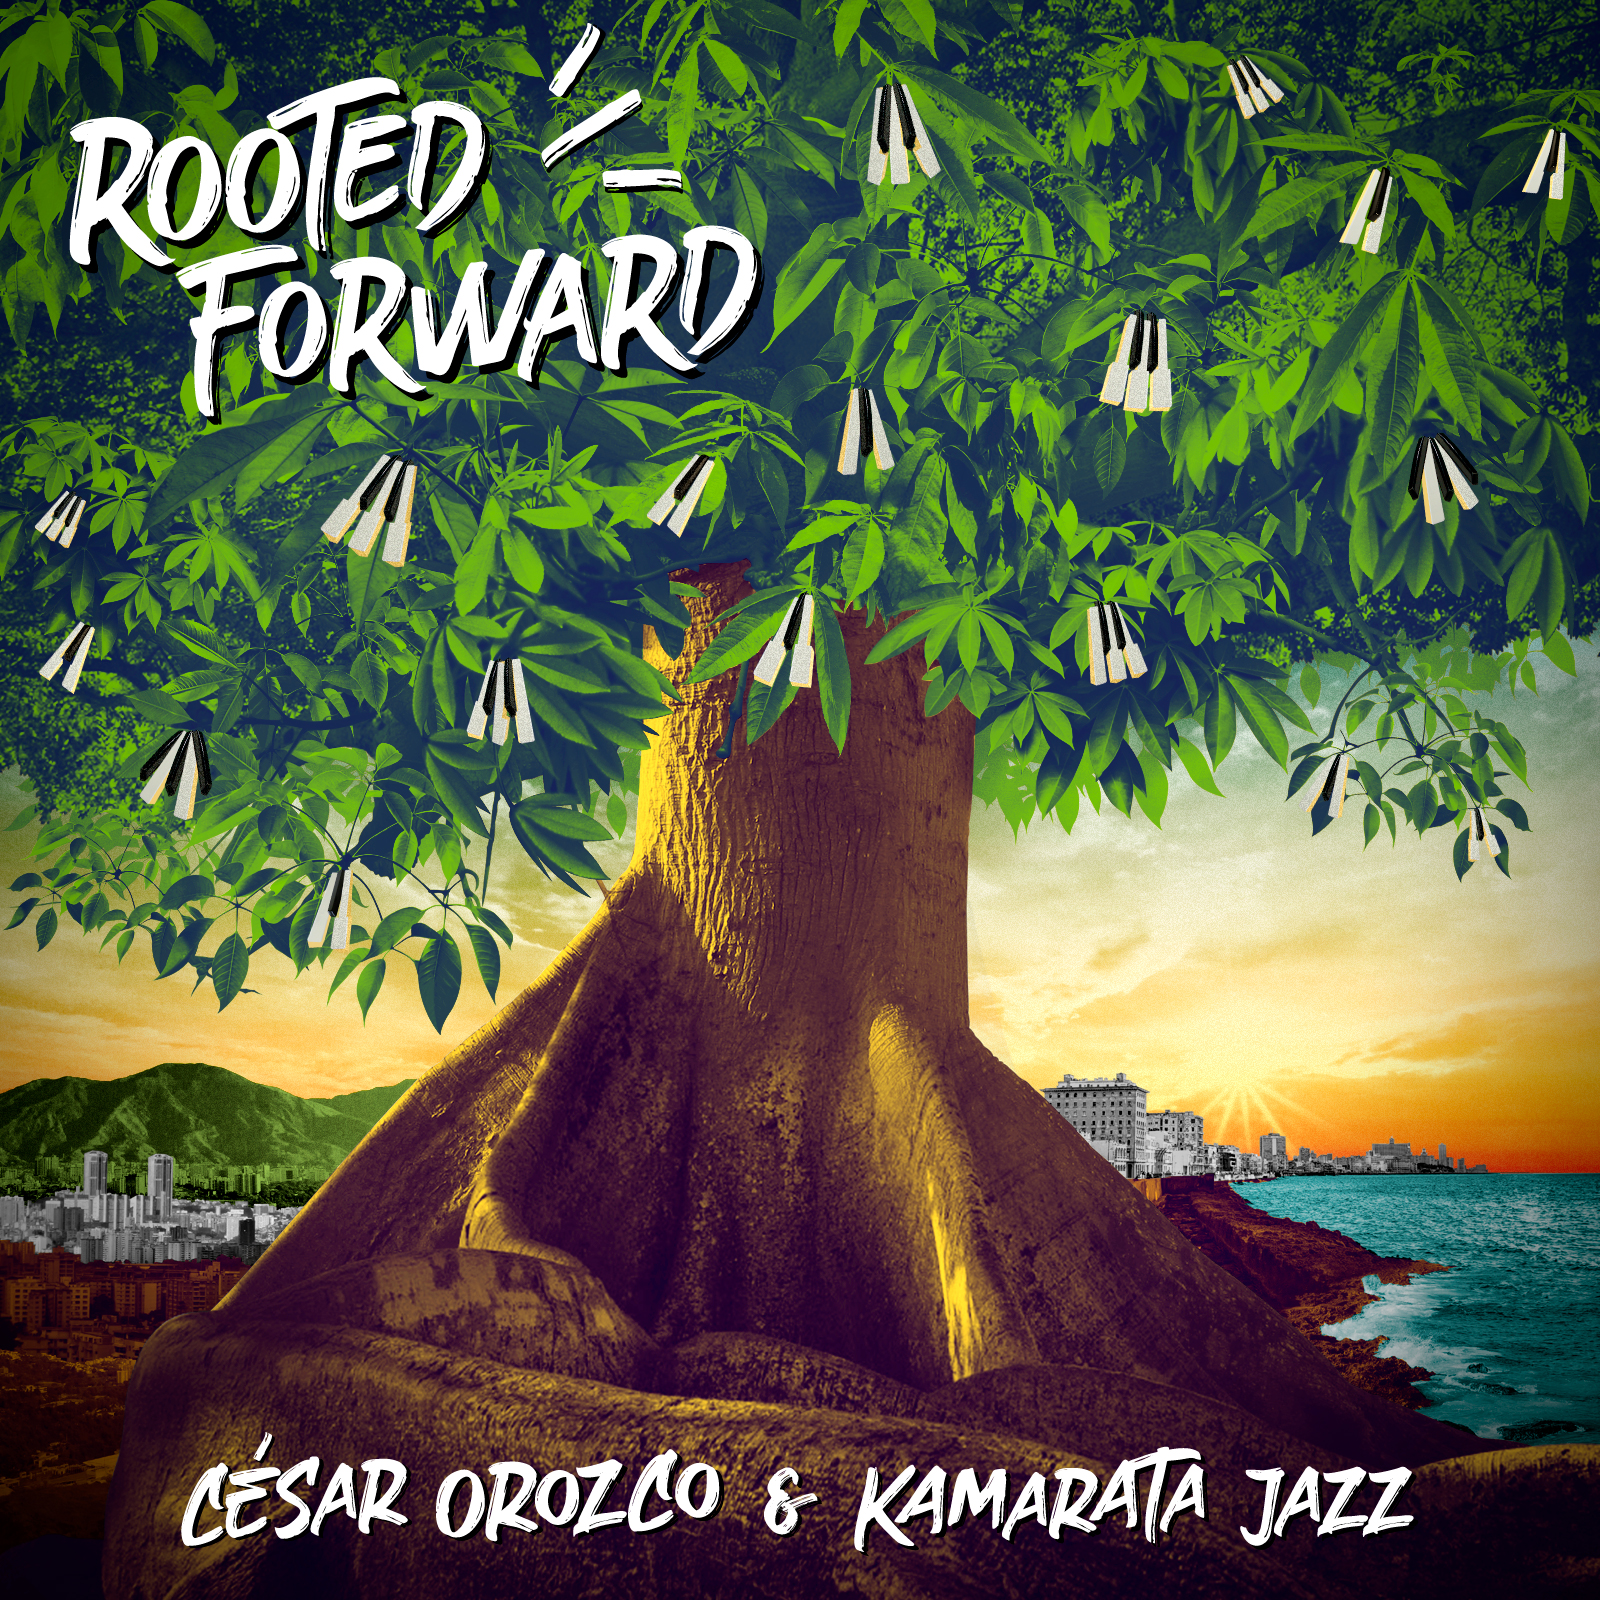 NEW RELEAE: César Orozco and Kamarata Jazz's ROOTED FORWARD is out October 16, 2020